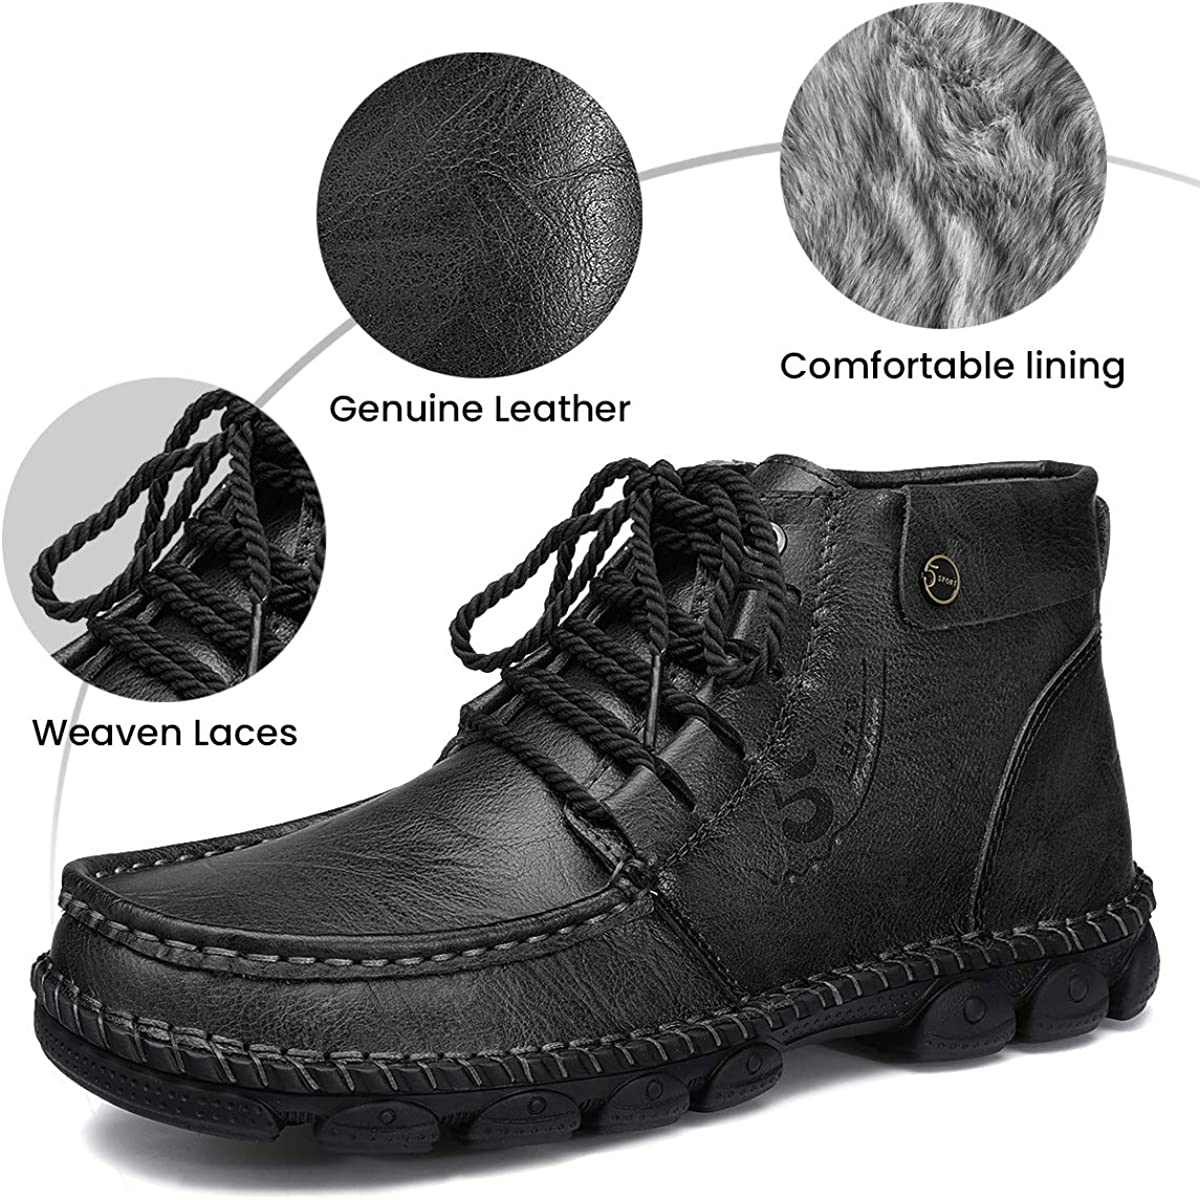 gracosy Mens Leather Ankle Boots Winter Fur Lining WAS £39.99 NOW £23.99 w/code gracosy1026a @ Amazon